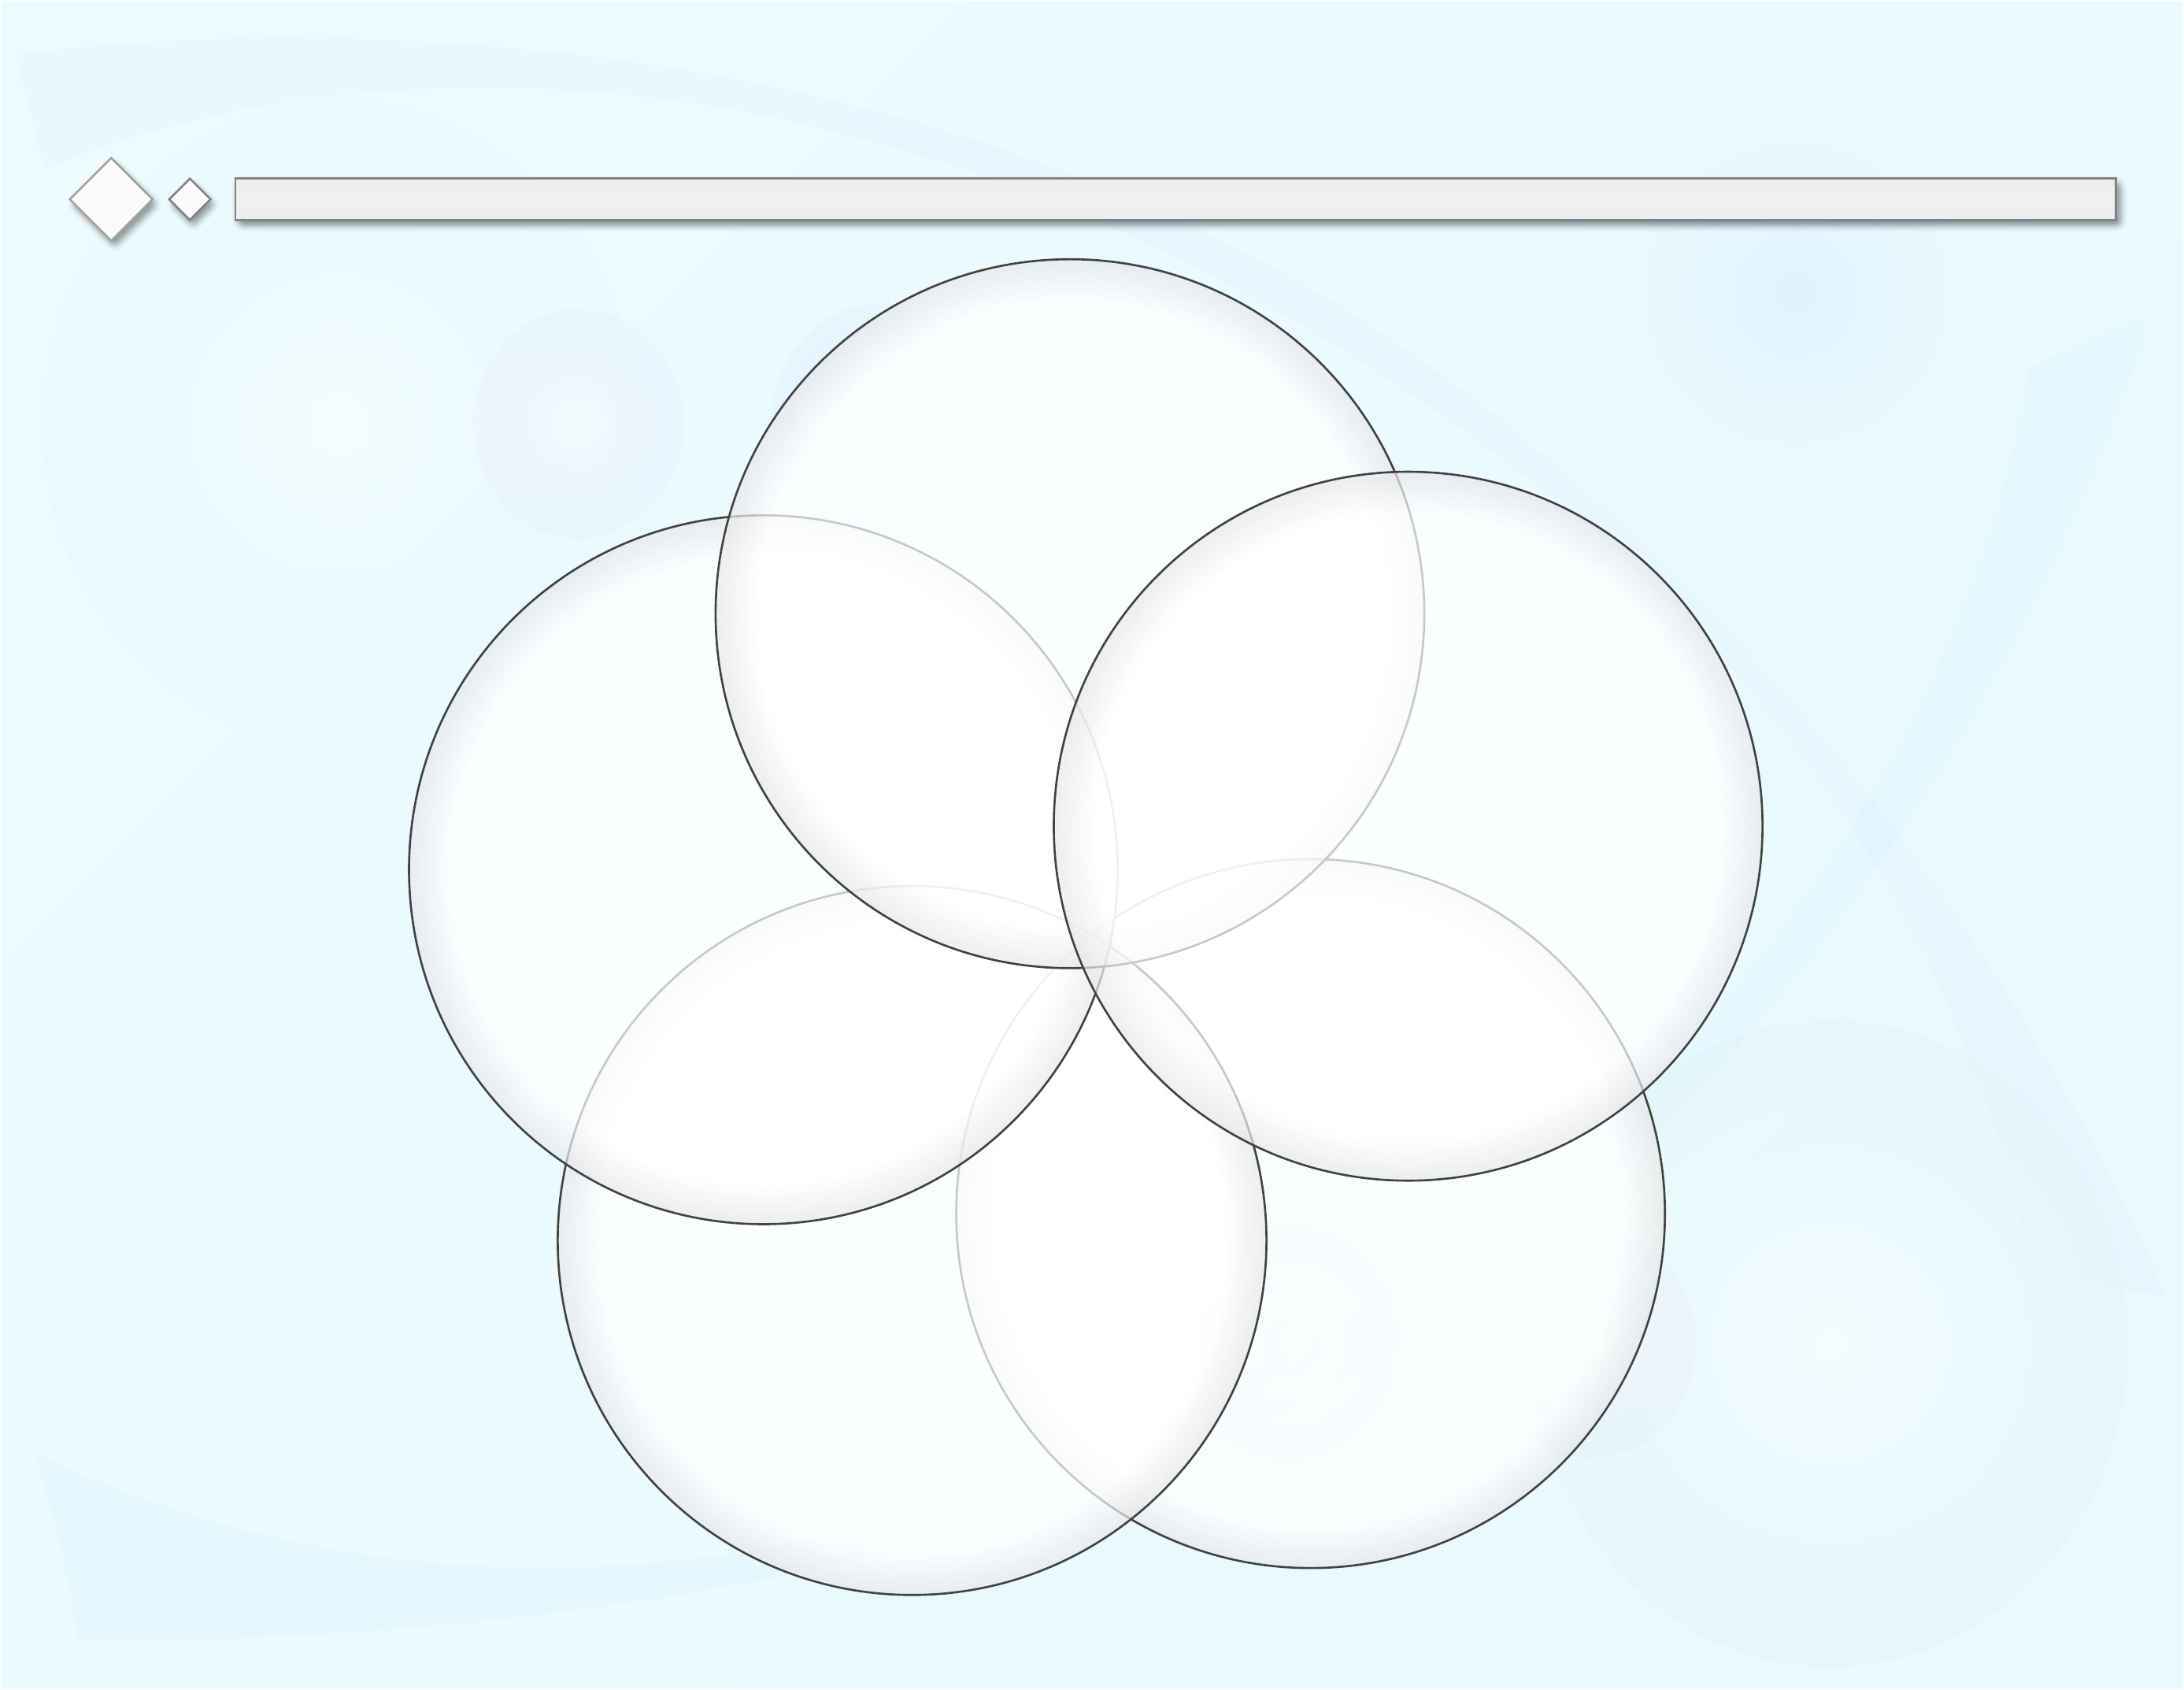 Venn Diagram 5 Circles Template 6 Circles Venn Diagram Template Free Download